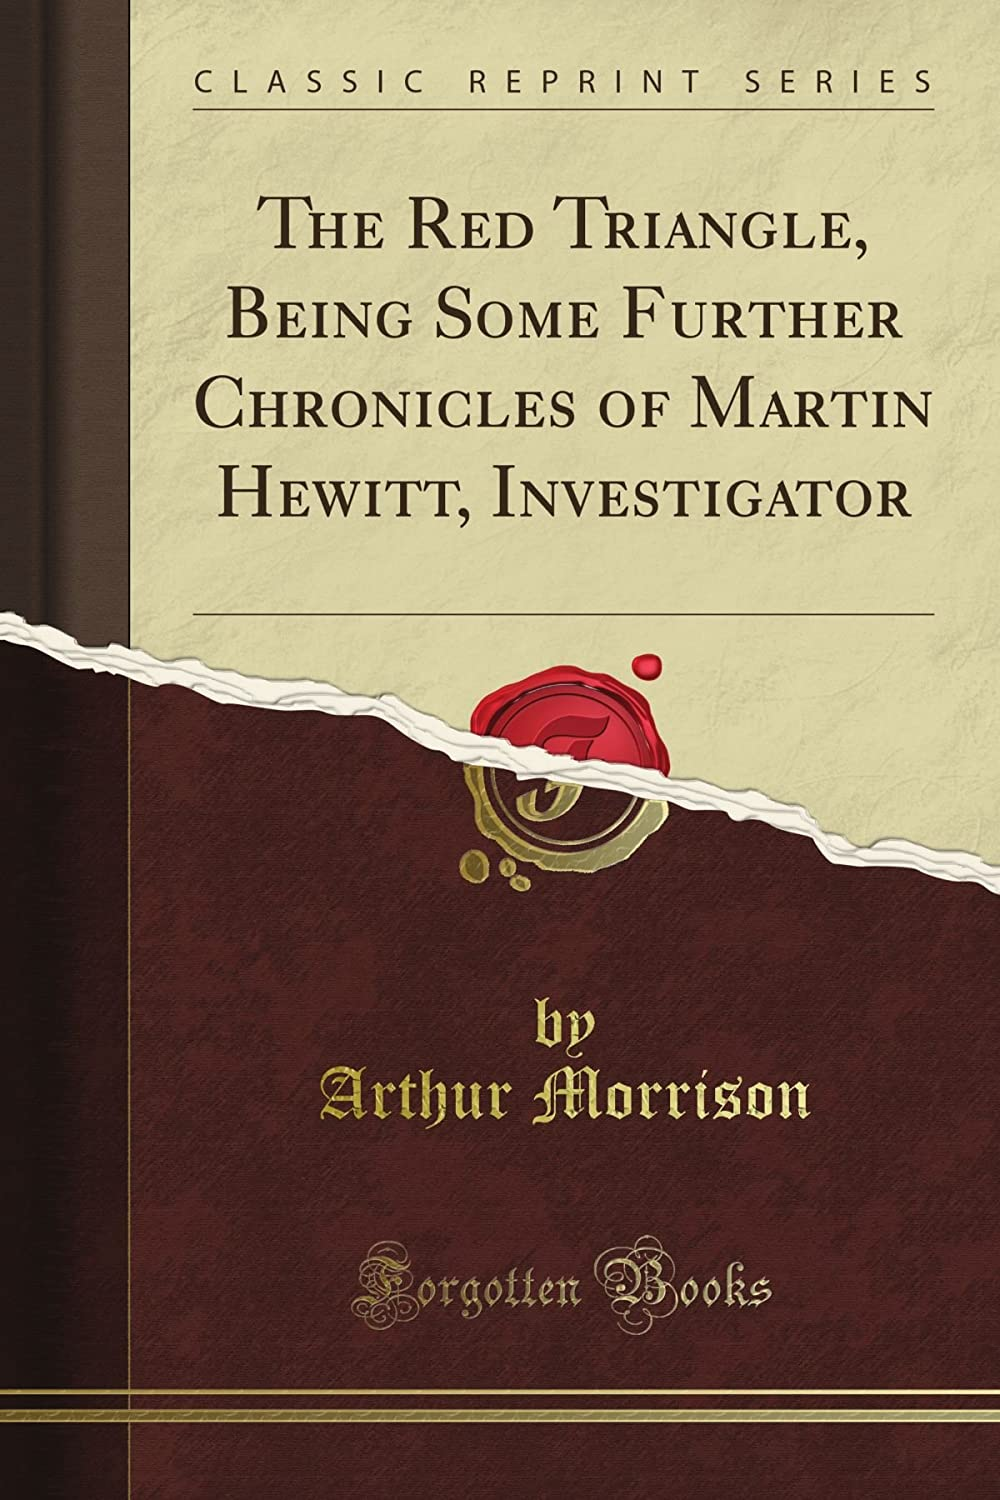 The Red Triangle, Being Some Further Chronicles of Martin Hewitt, Investigator (Classic Reprint)